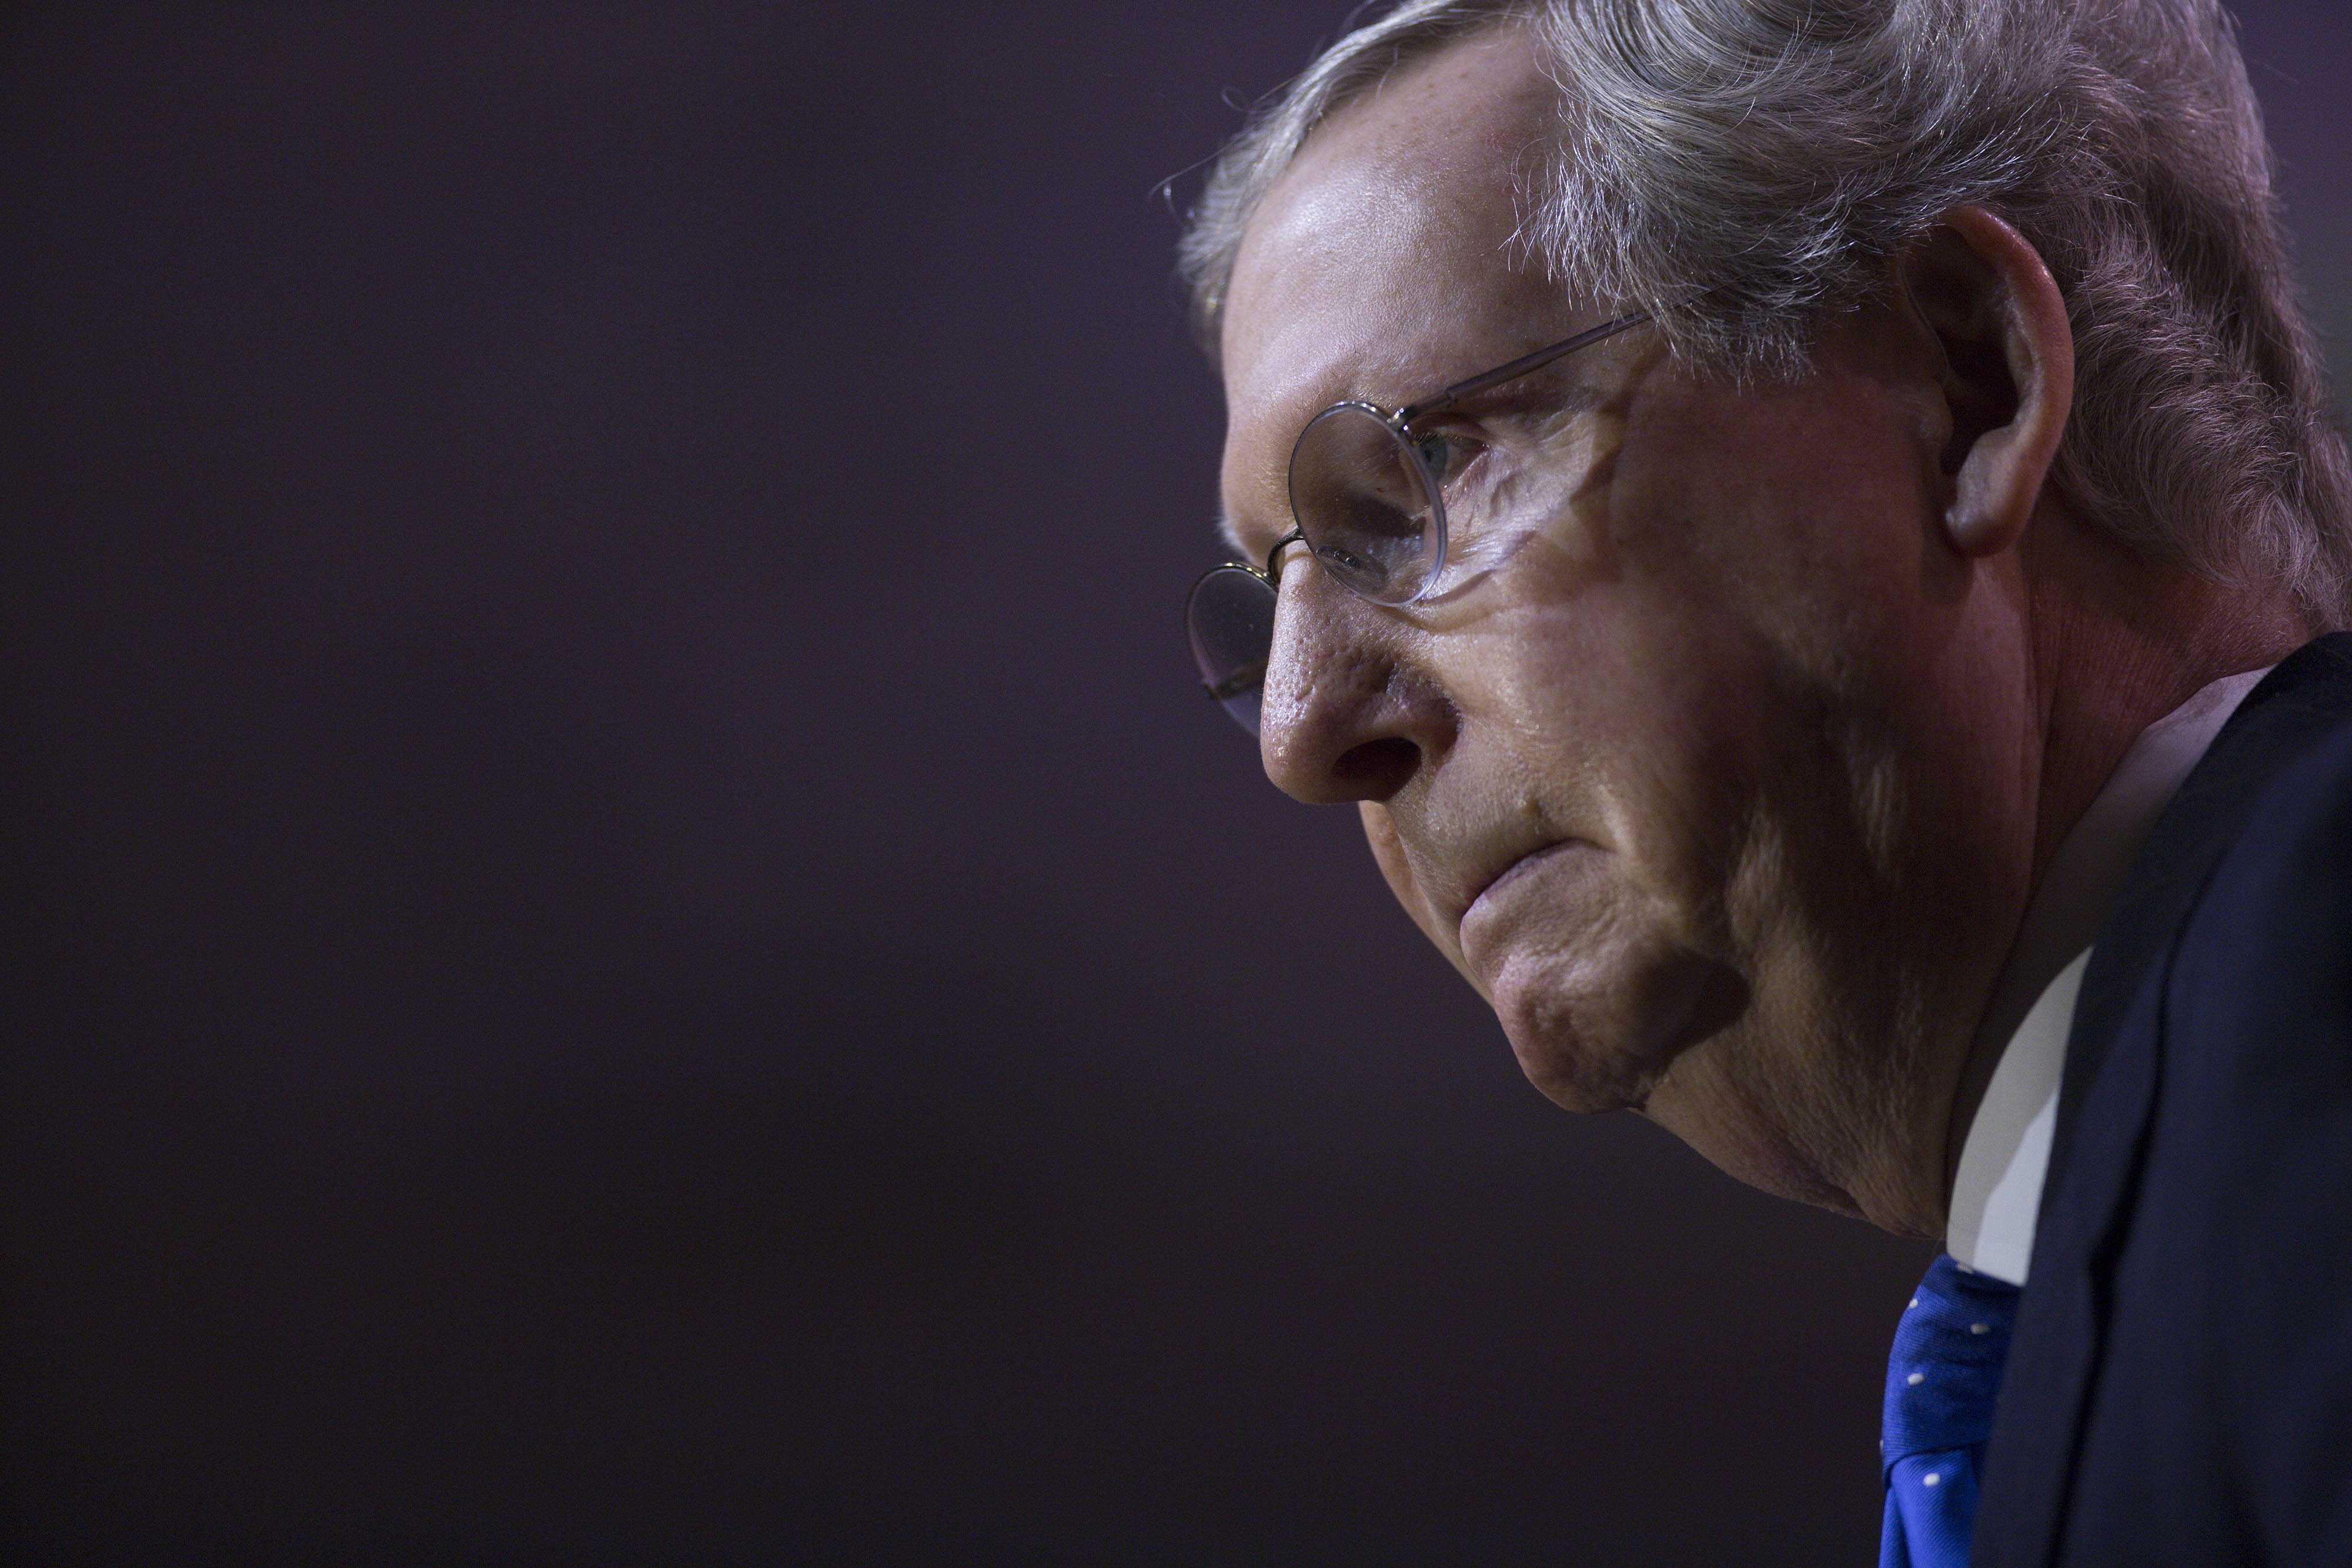 McConnell's claims on Kentucky exchange, Obamacare baffle experts